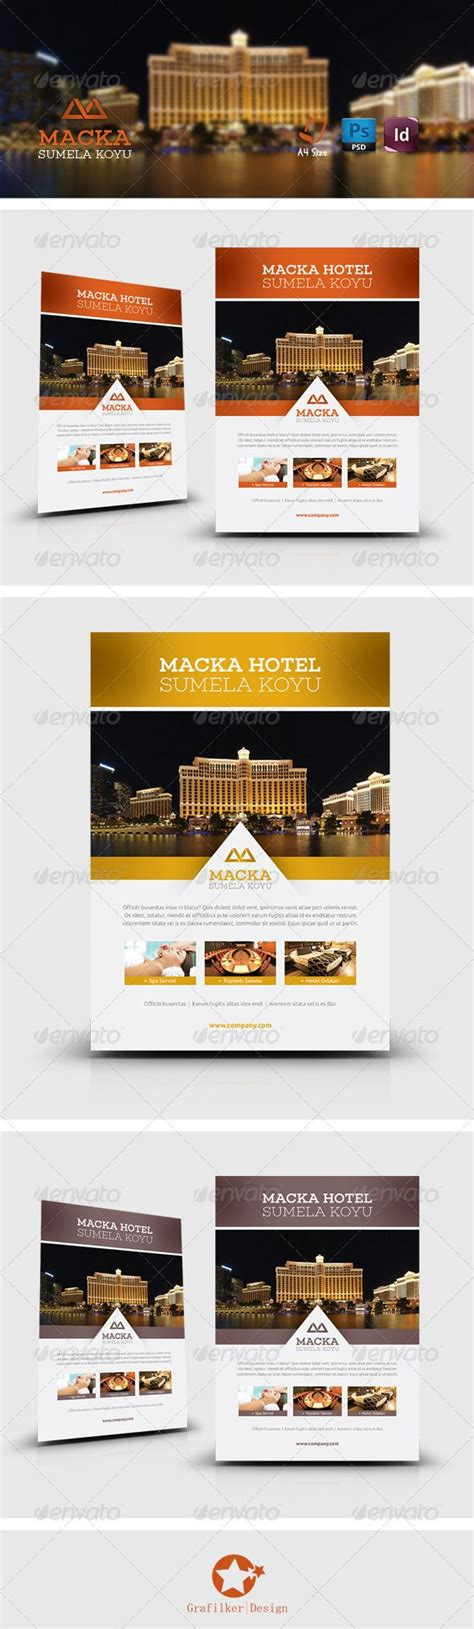 template flyer hotel 7 best images about design print ad on pinterest